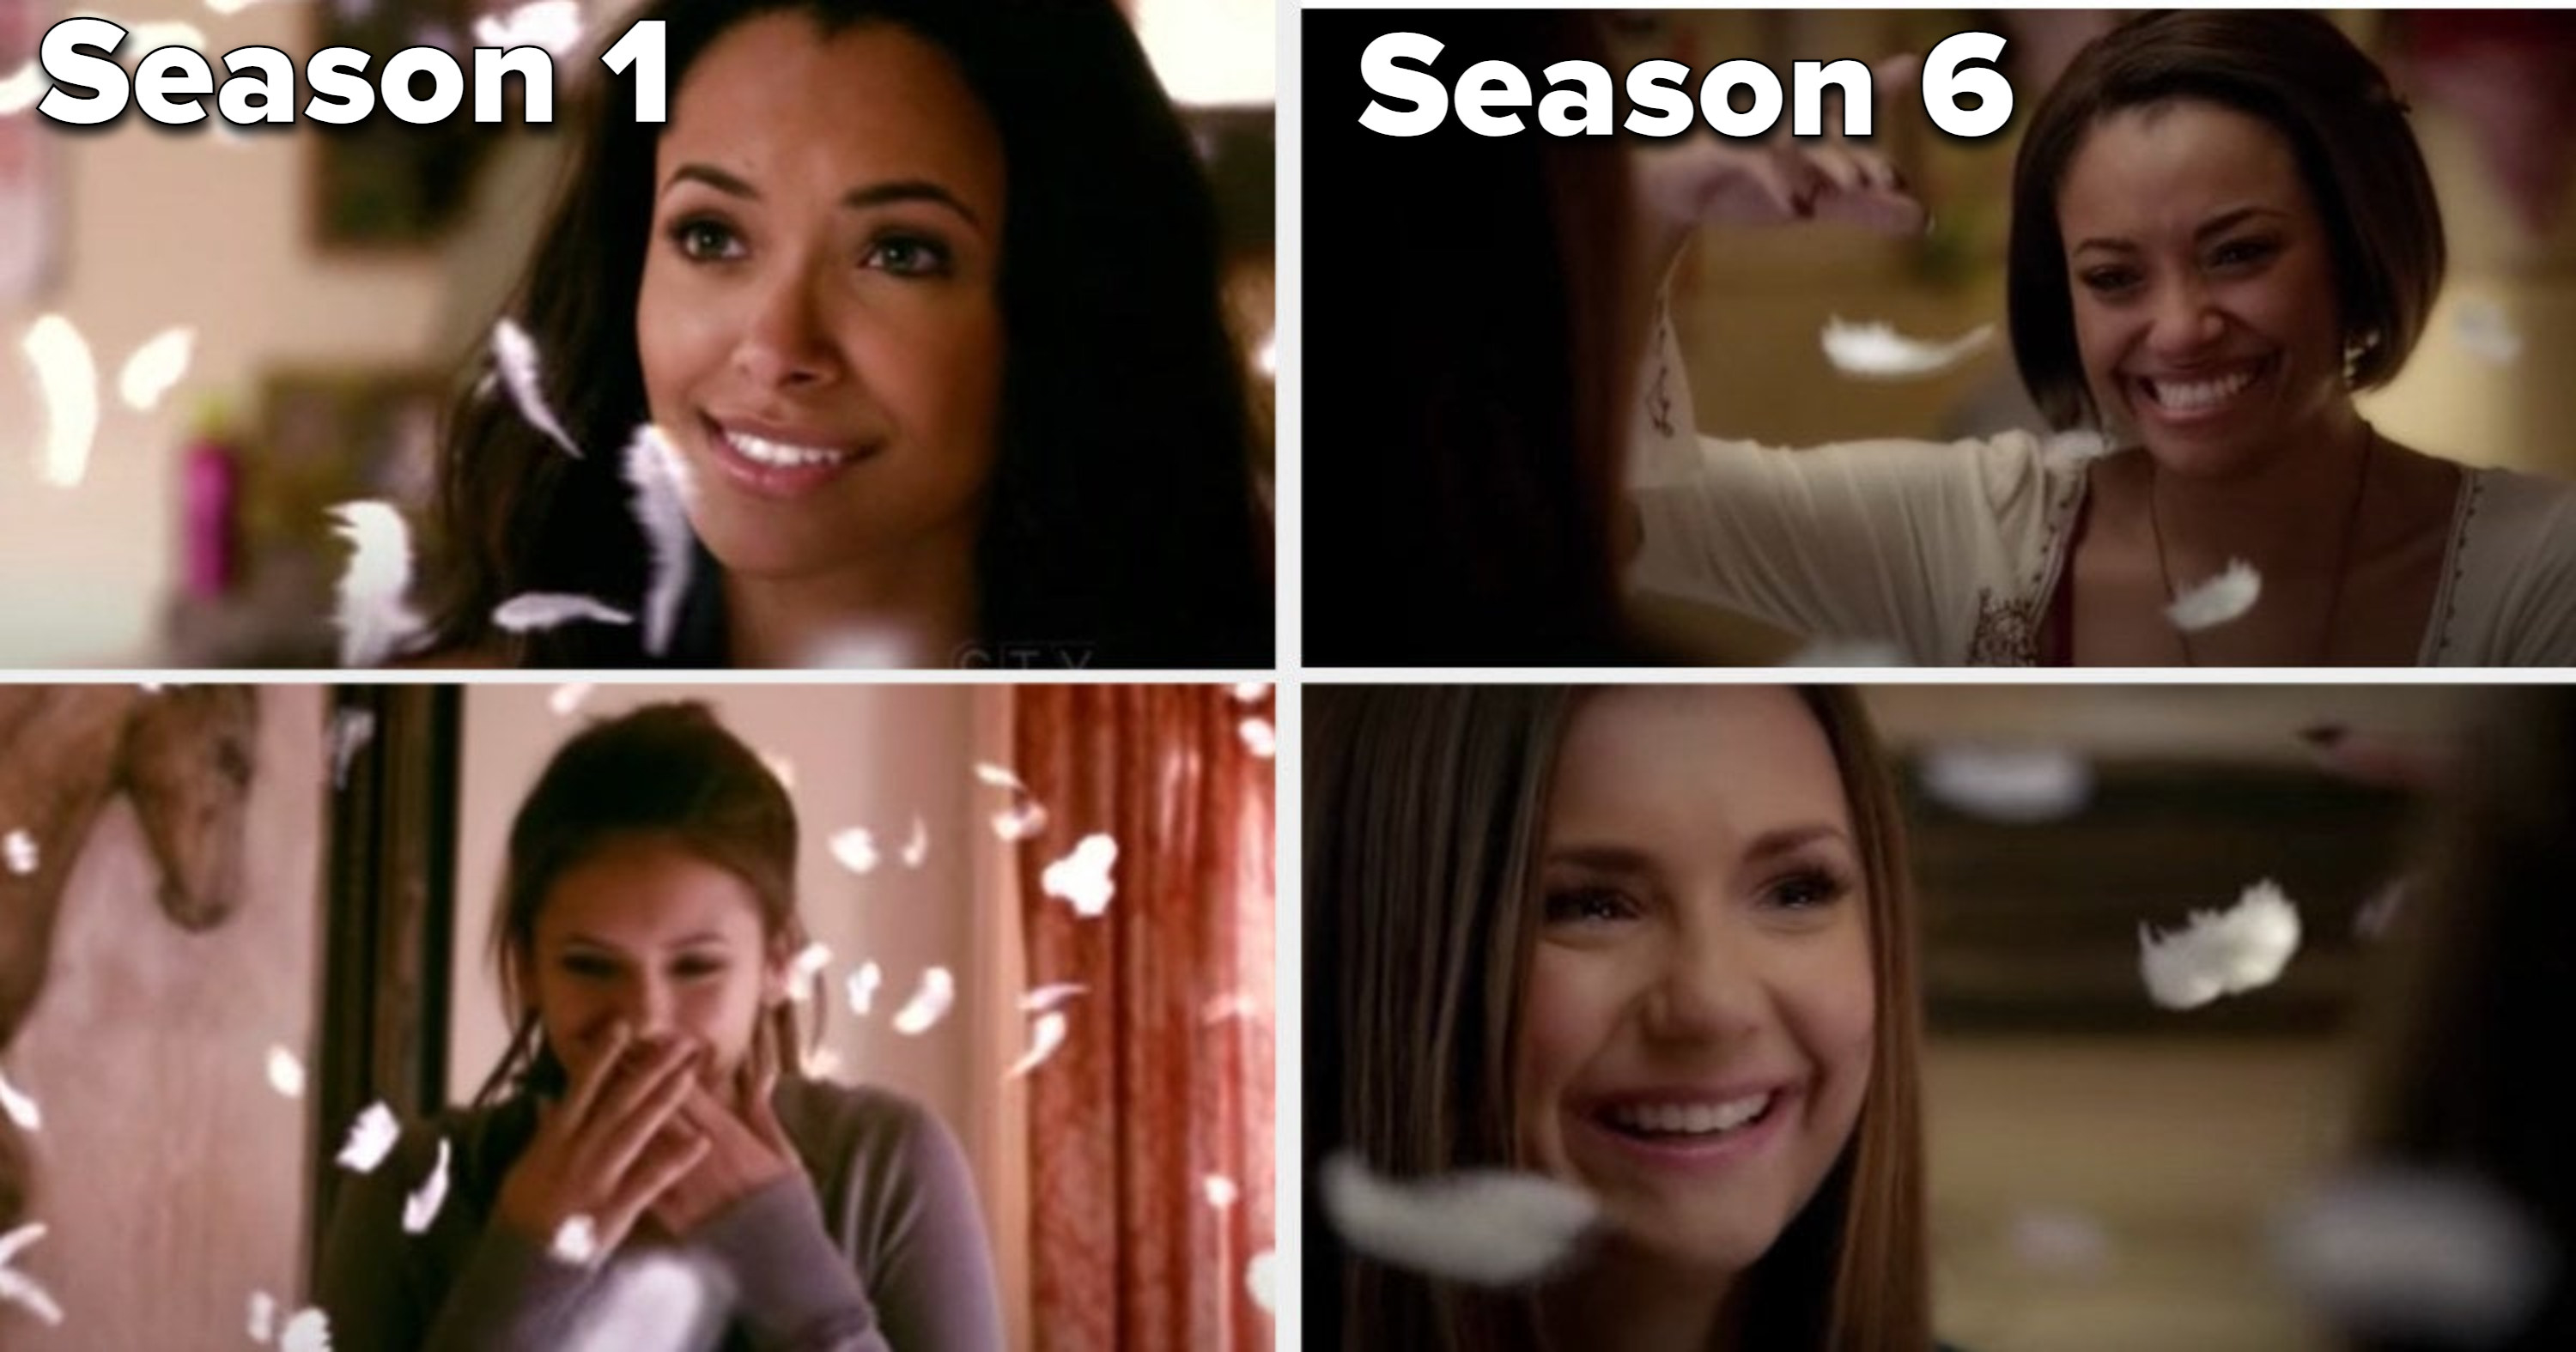 In Season 1, Bonnie floats feathers as Elena smiles in shock, and in Season 6, they both laugh through their tears as Bonnie does the same thing